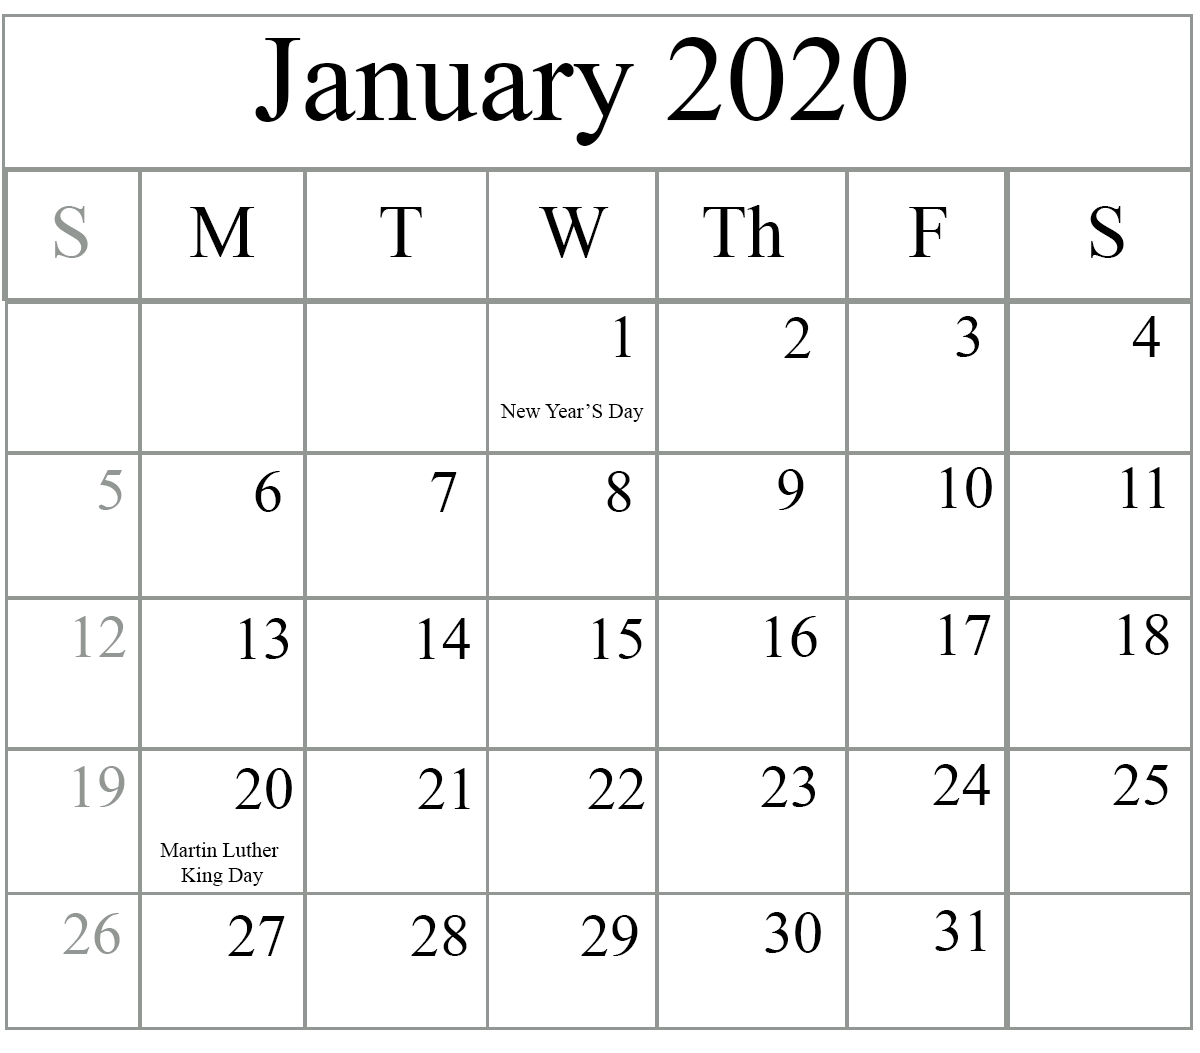 January Holidays Calendar 2020